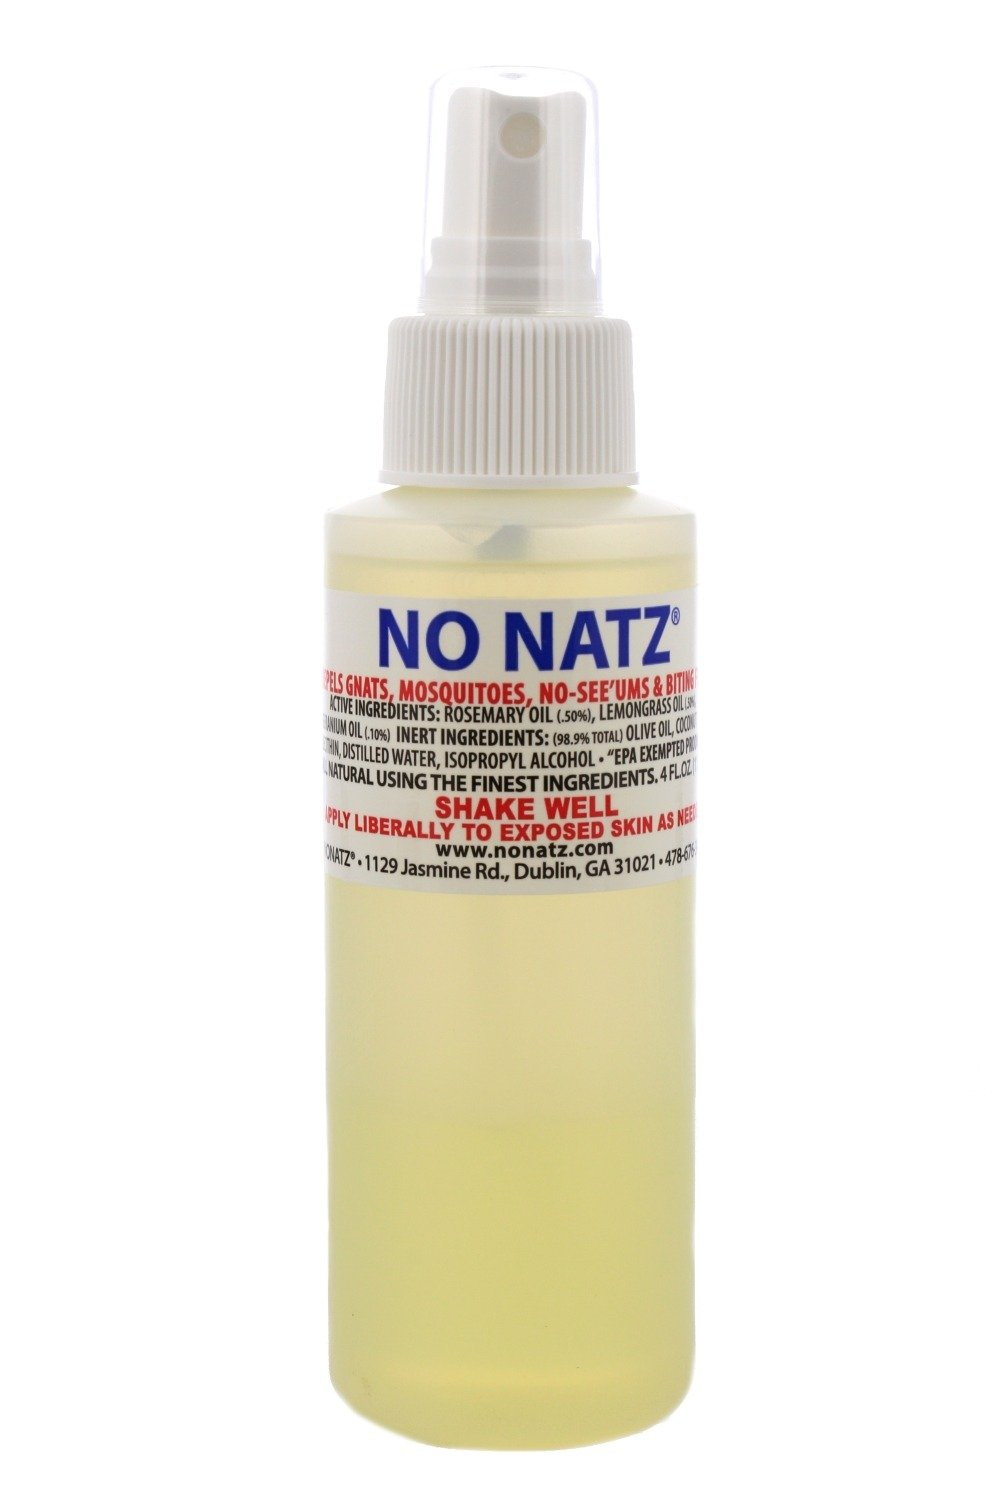 No Natz® Insect and Bug Protection, 4oz Spray, All-Natural and Deet-Free, Hypo-Allergenic and Safe for Pets